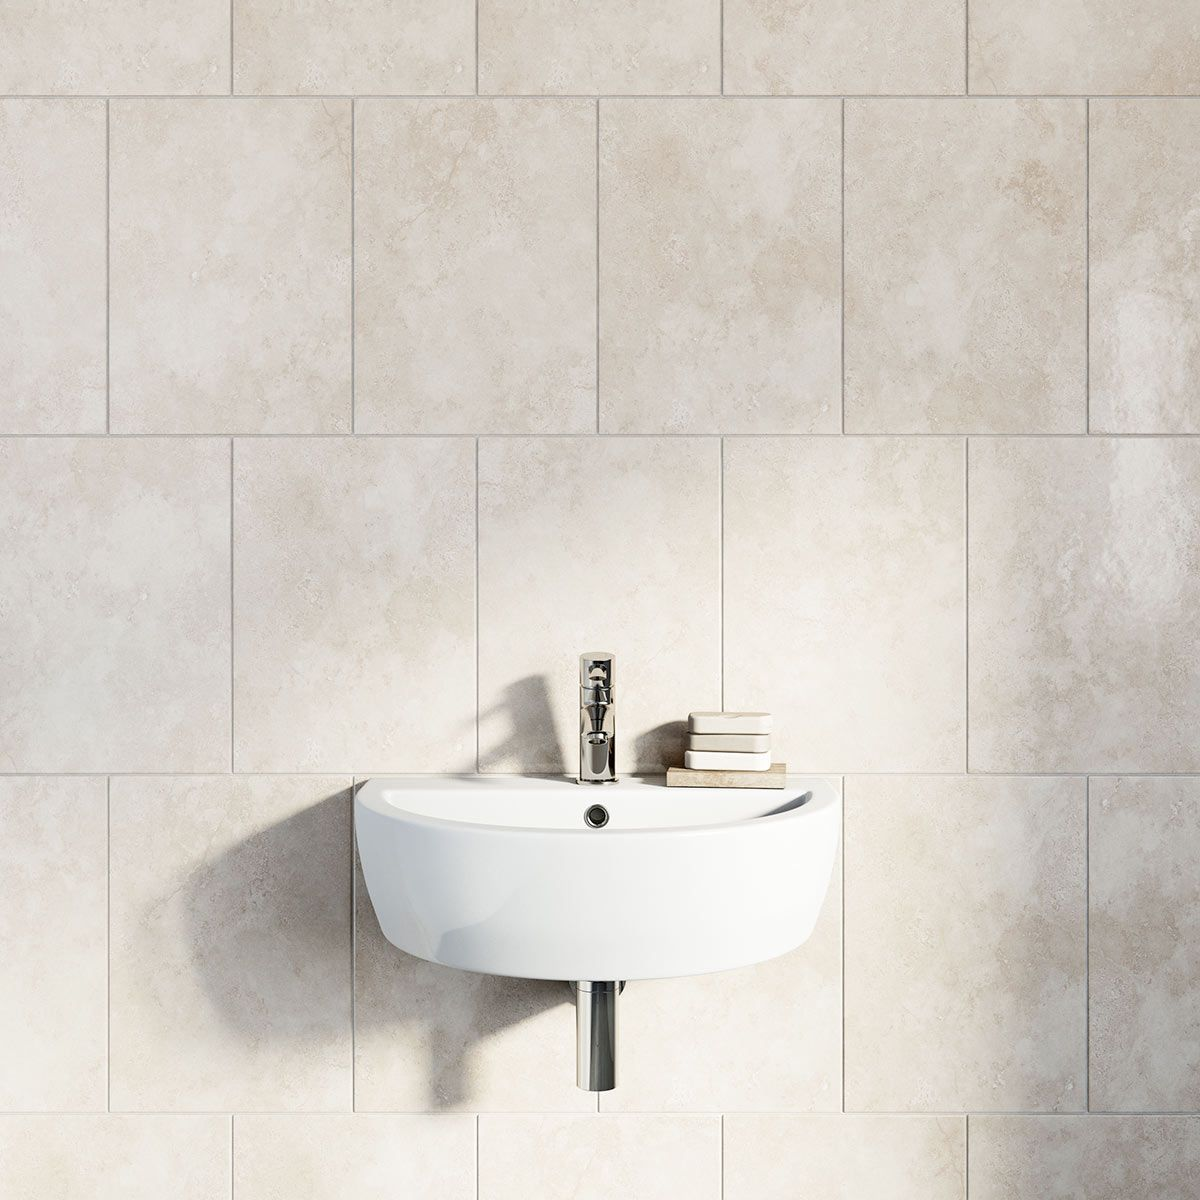 British Ceramic Tile Earth stone beige gloss tile 300mm x 416mm ...